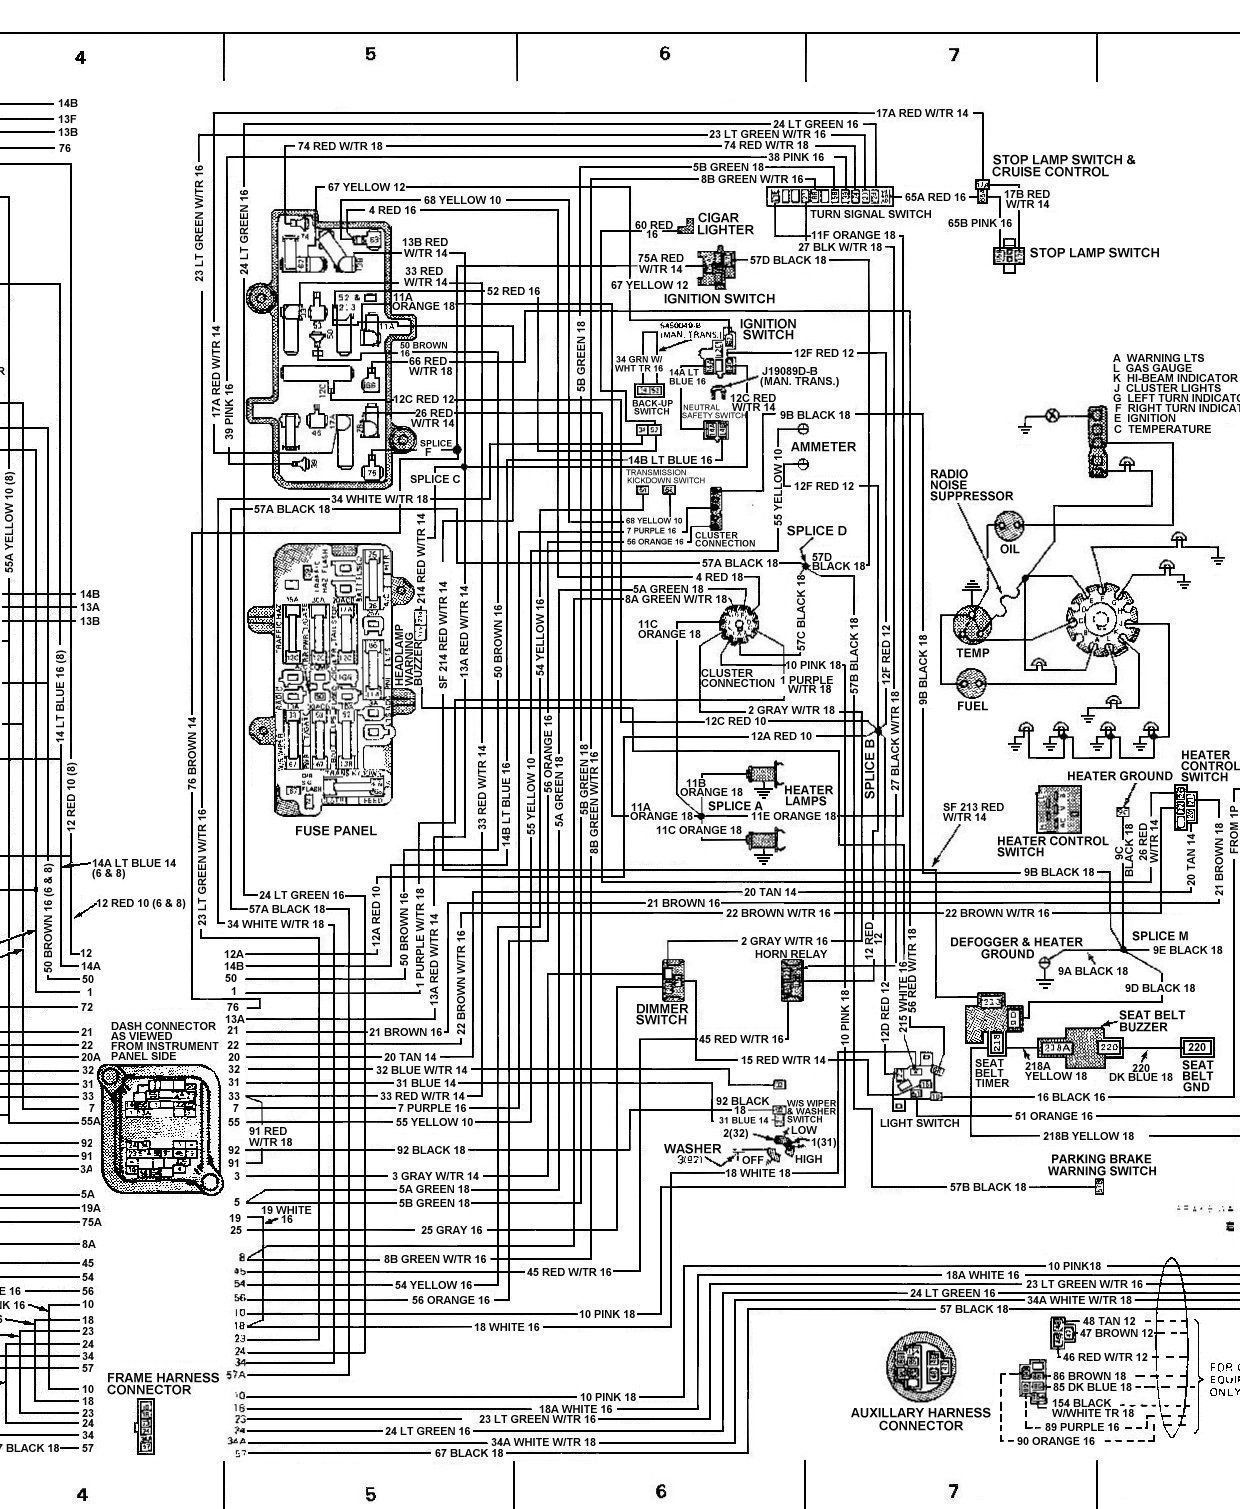 Electrical Wiring Diagram 2003 Vw Jetta Volkswagen on 03 f350 throttle position sensor